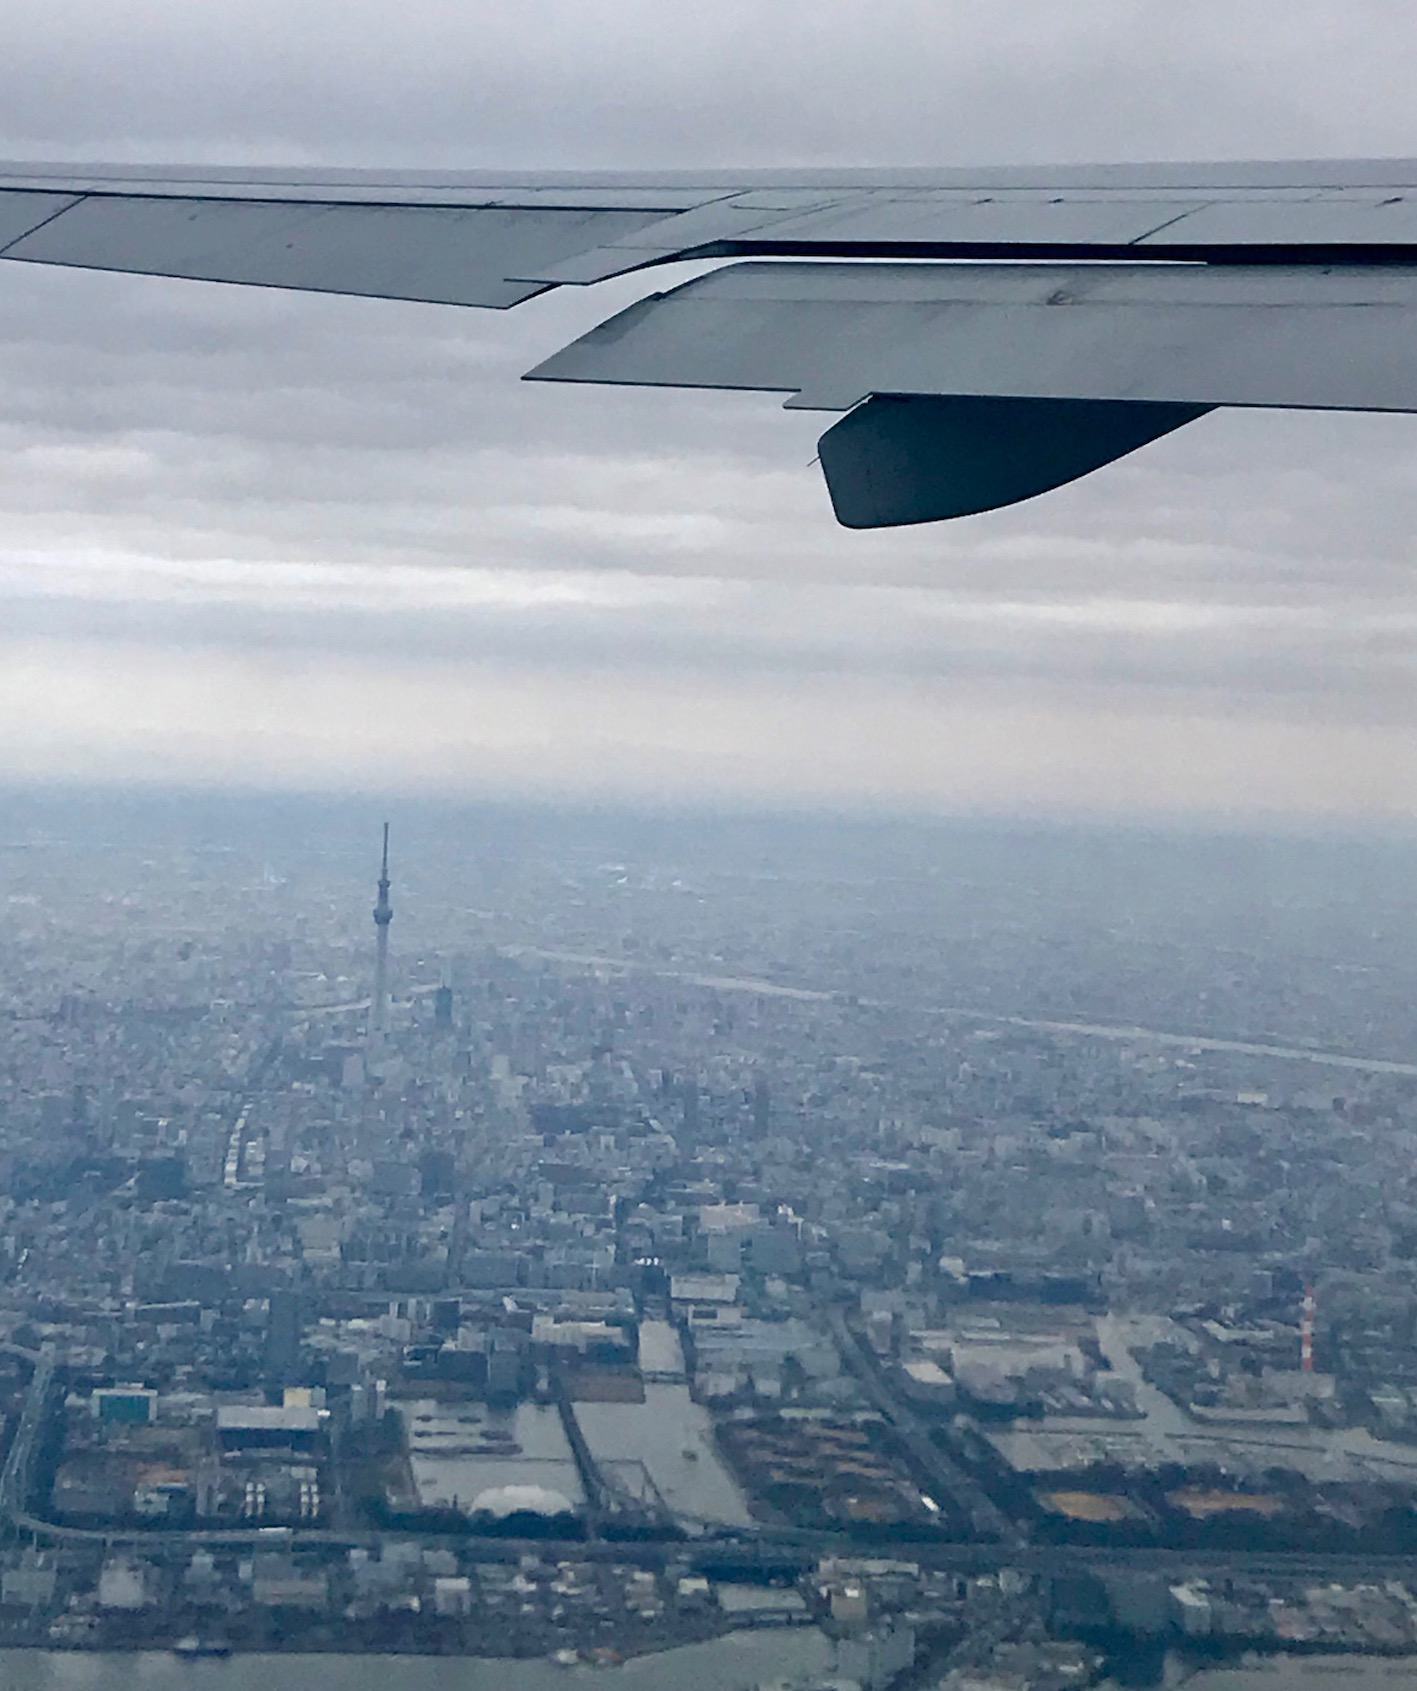 The Tokyo Skytree Japan.